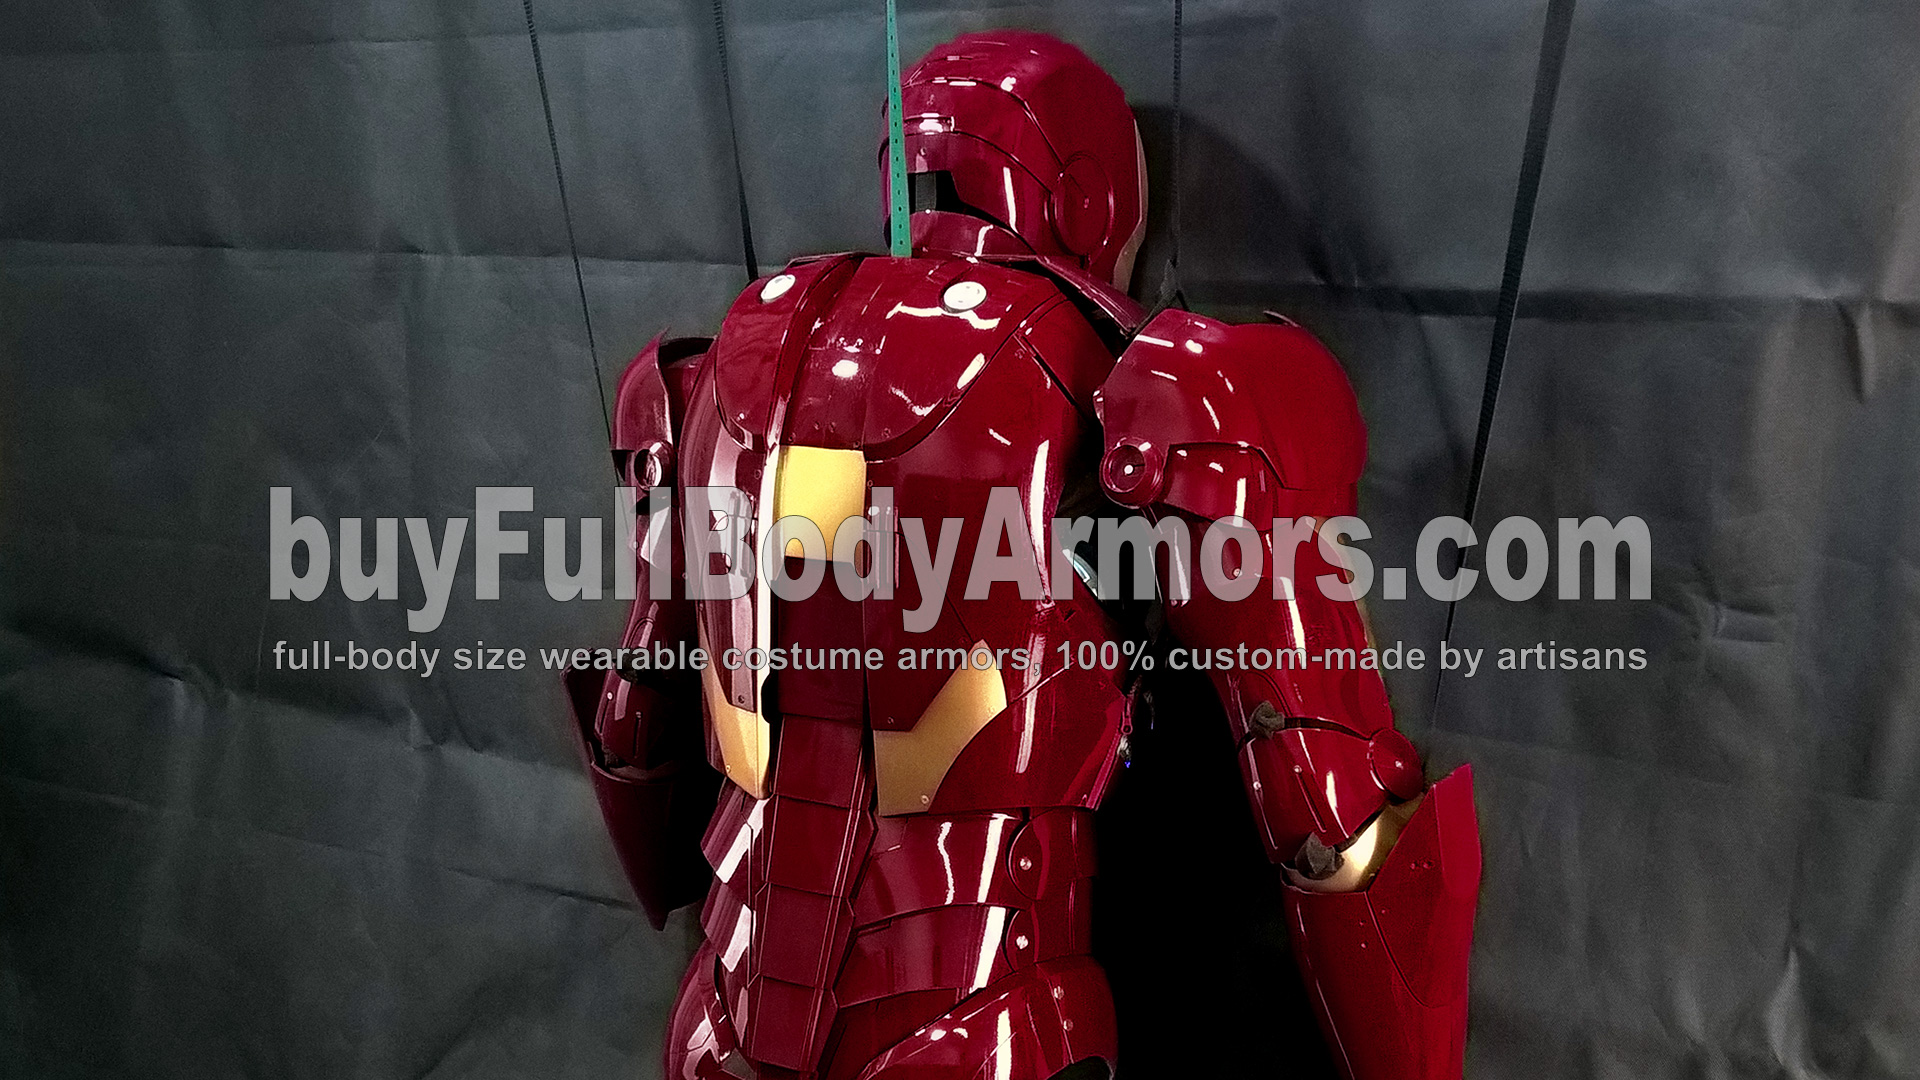 The Wearable Iron Man Suit Mark 3 III Armor Costume - Top Half Prototype 8